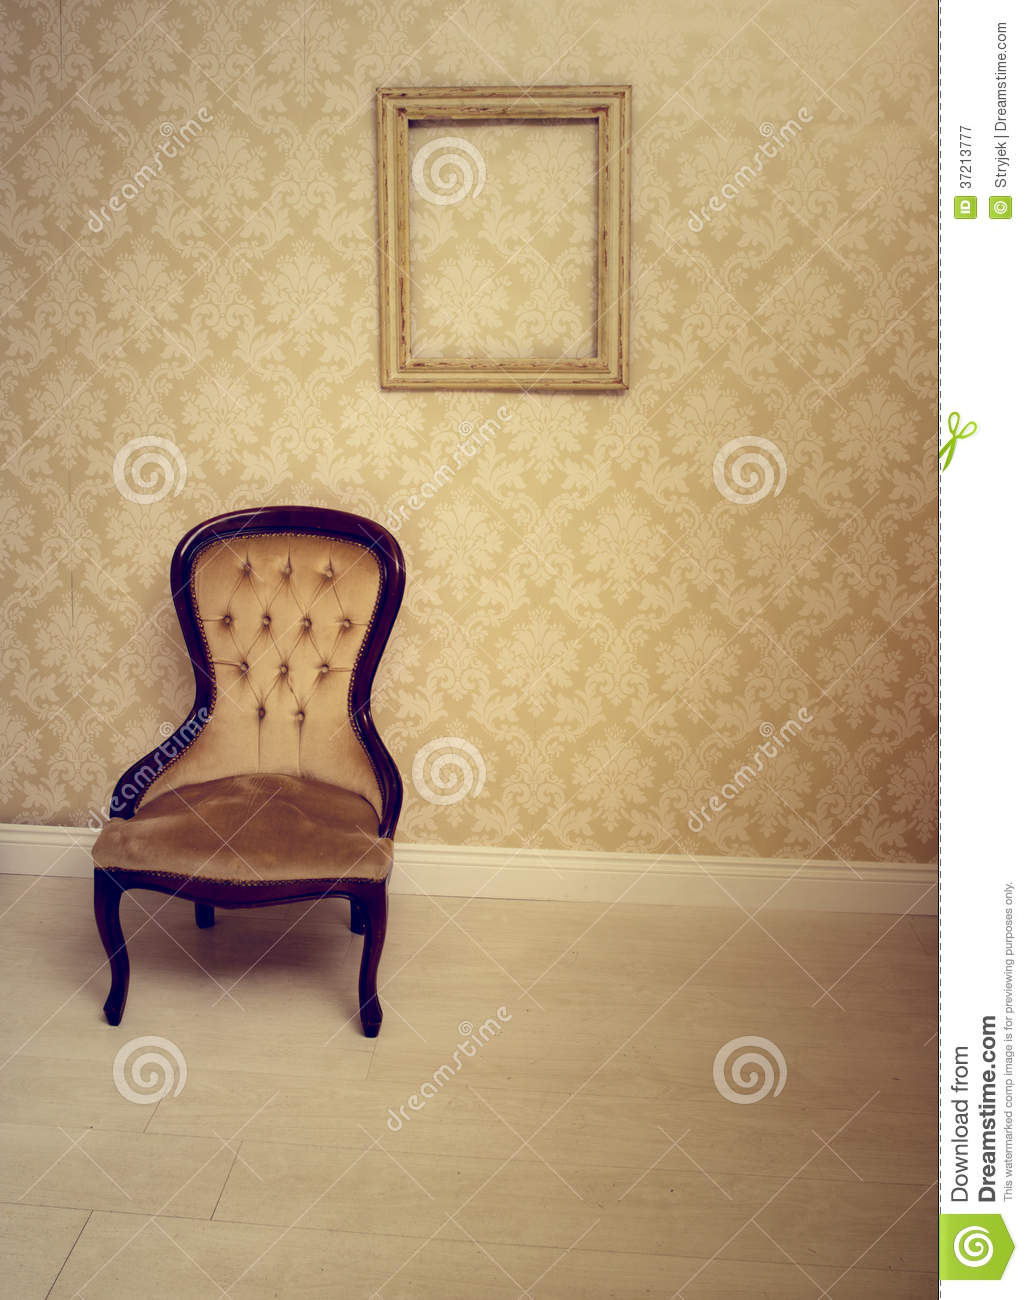 Antique upholstered chair in a wallpapered room - Antique Upholstered Chair In A Wallpapered Room Stock Image